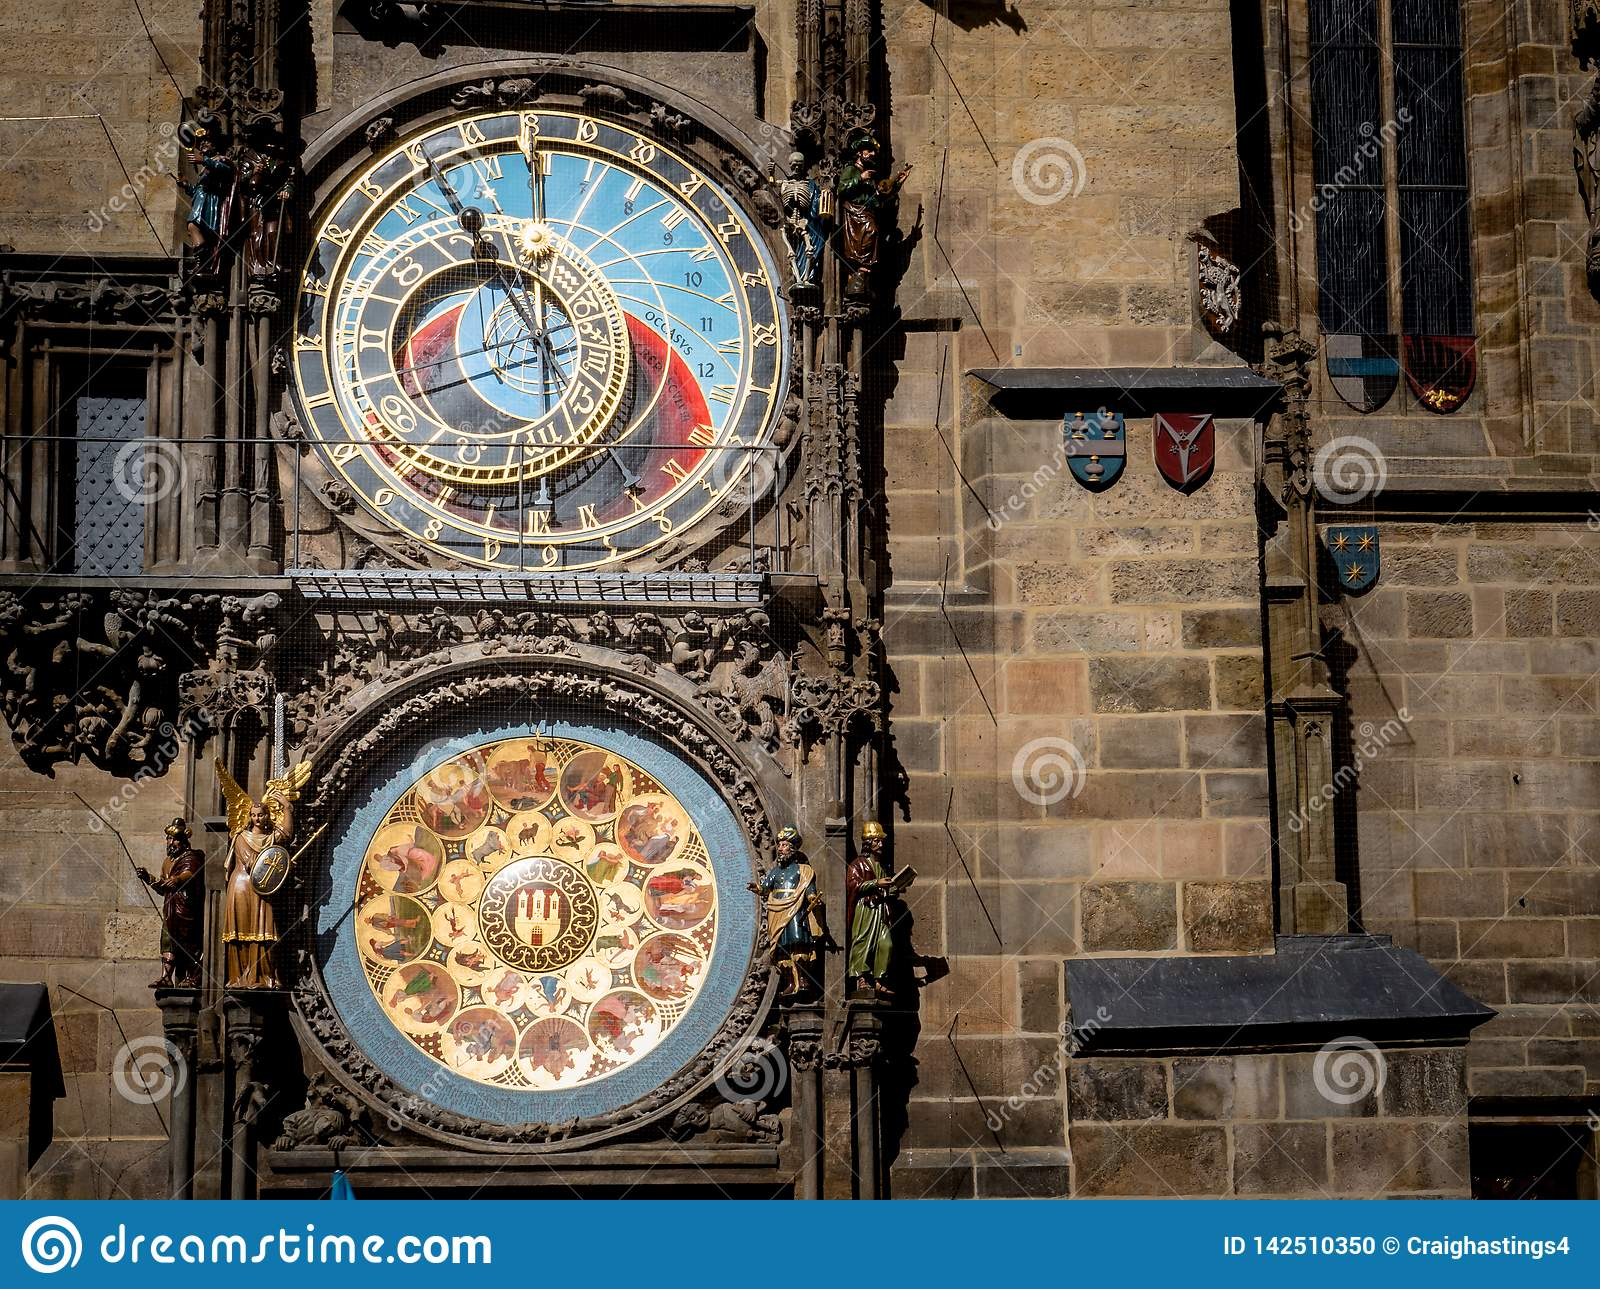 Prague Czechia View of Iconic Astrological Clock Tower Face